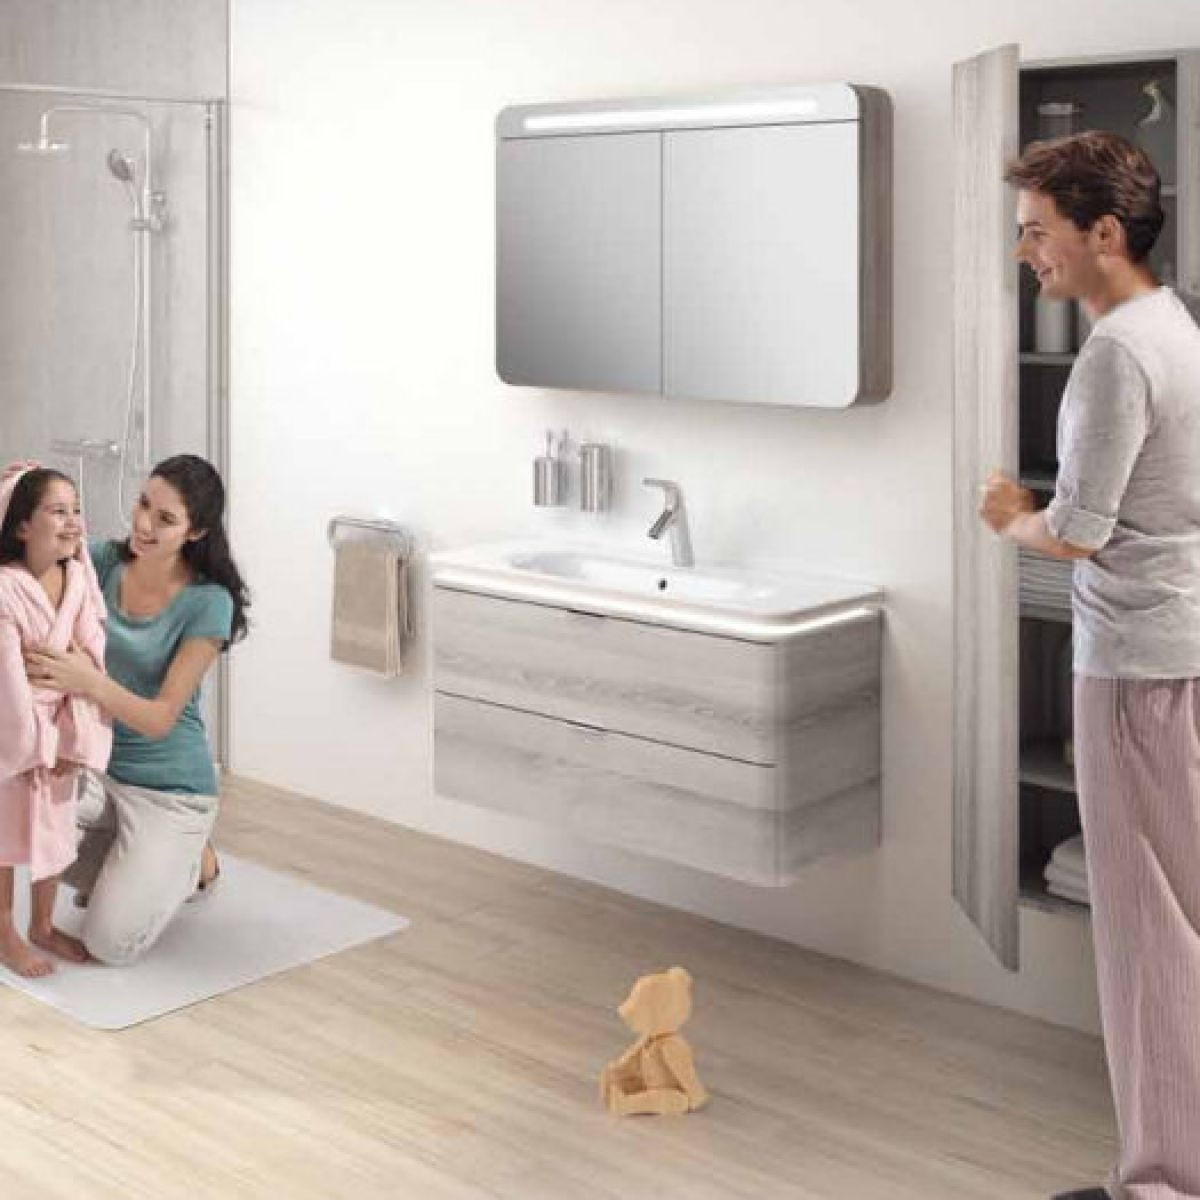 Vitra Nest Tall Column Unit with 1 Door | Vitra bathrooms, Nest and ...